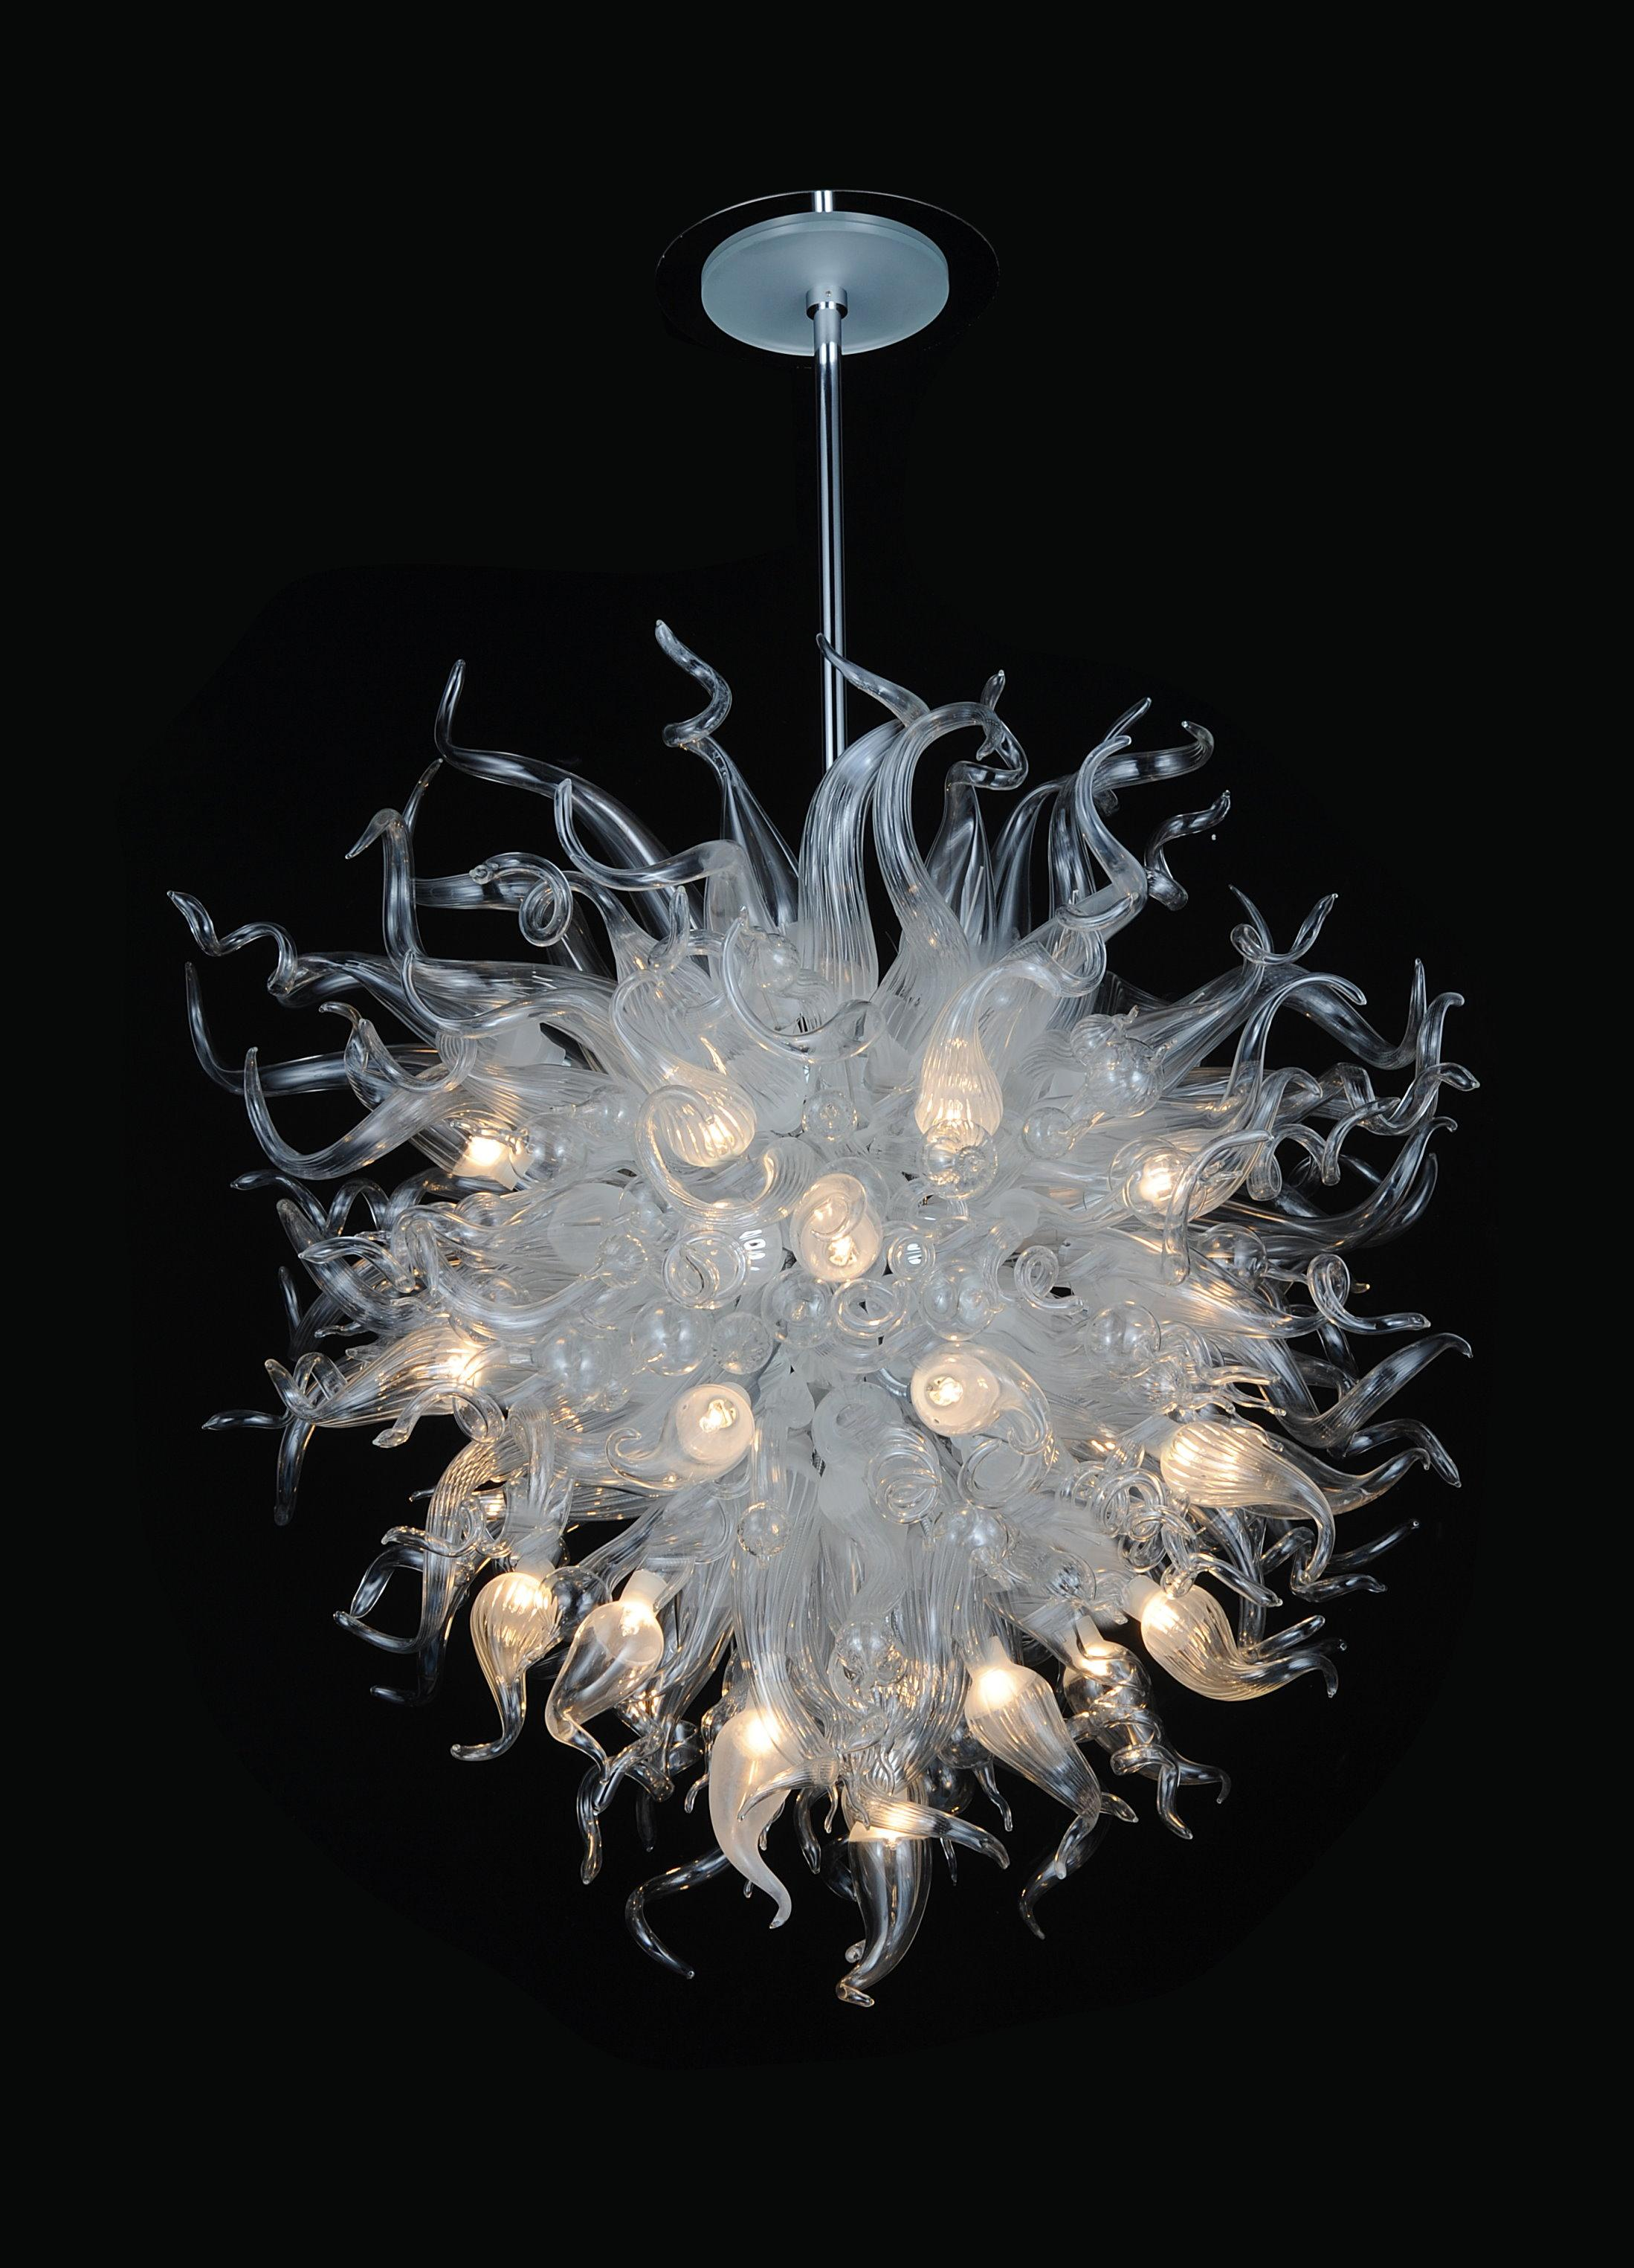 blown giulietta pendant by pin lamp glass e federico zafferano romeo majo design de